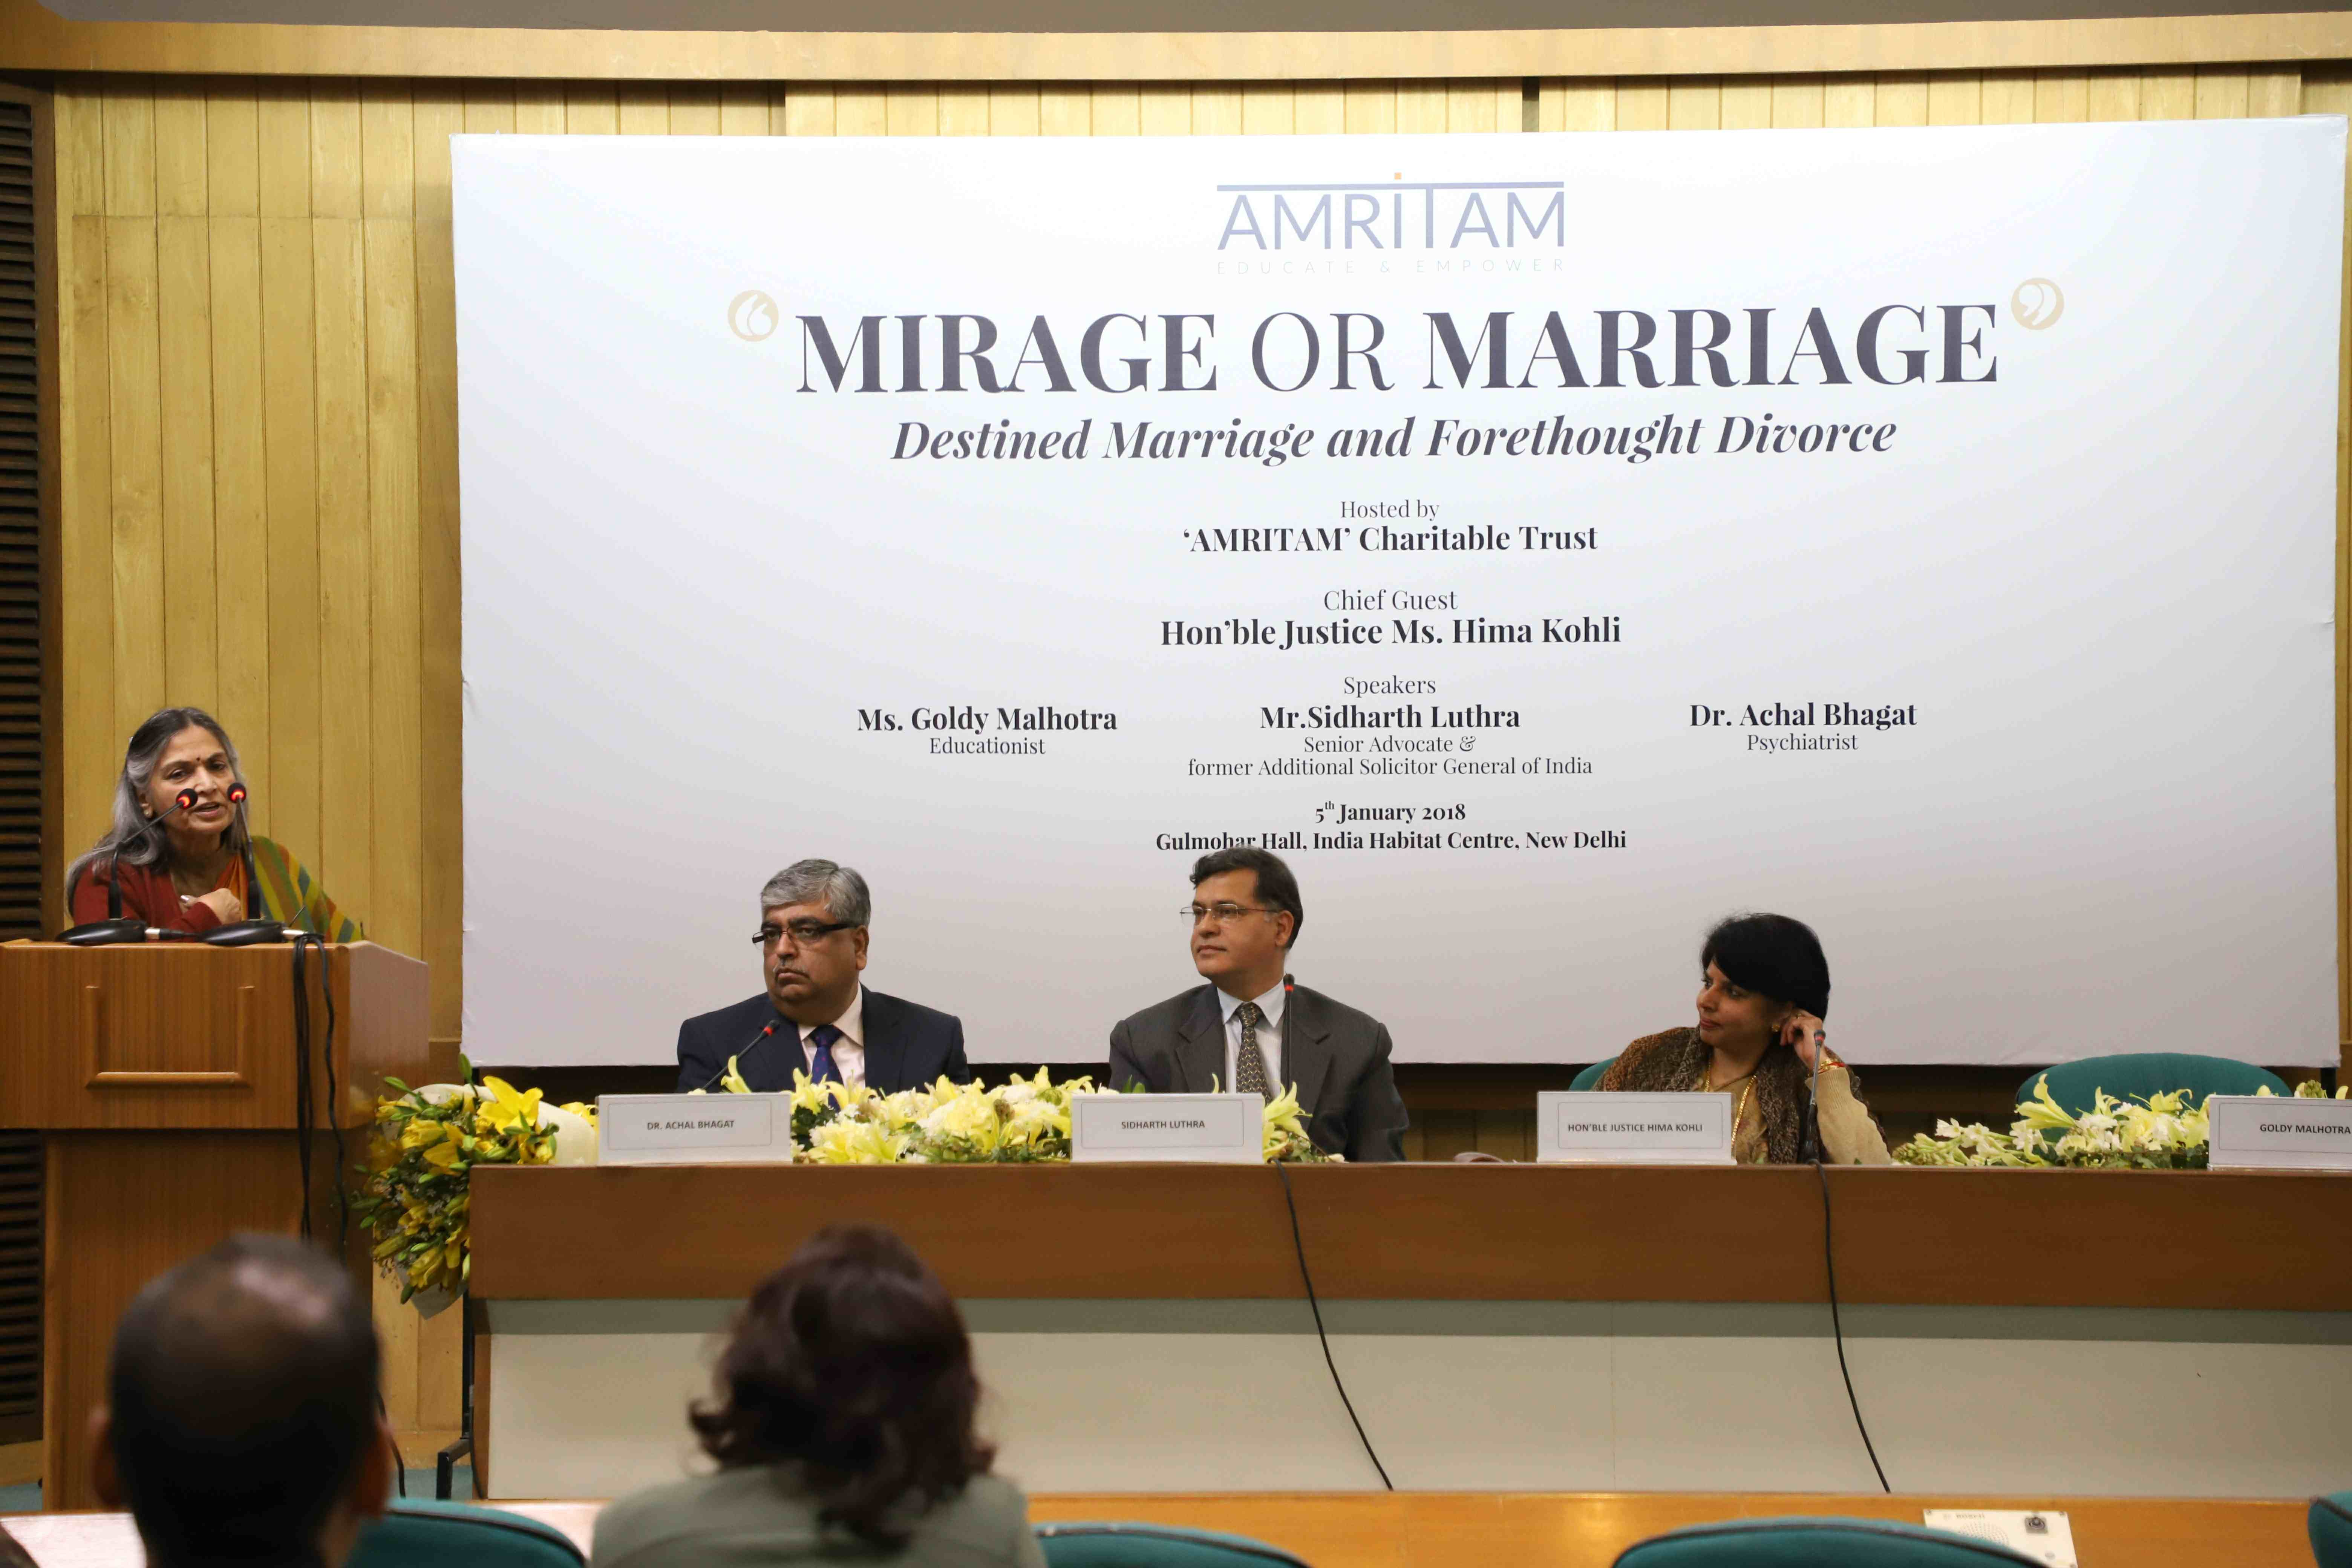 Seminar held in New Delhi highlights the growing menace of forethought divorce